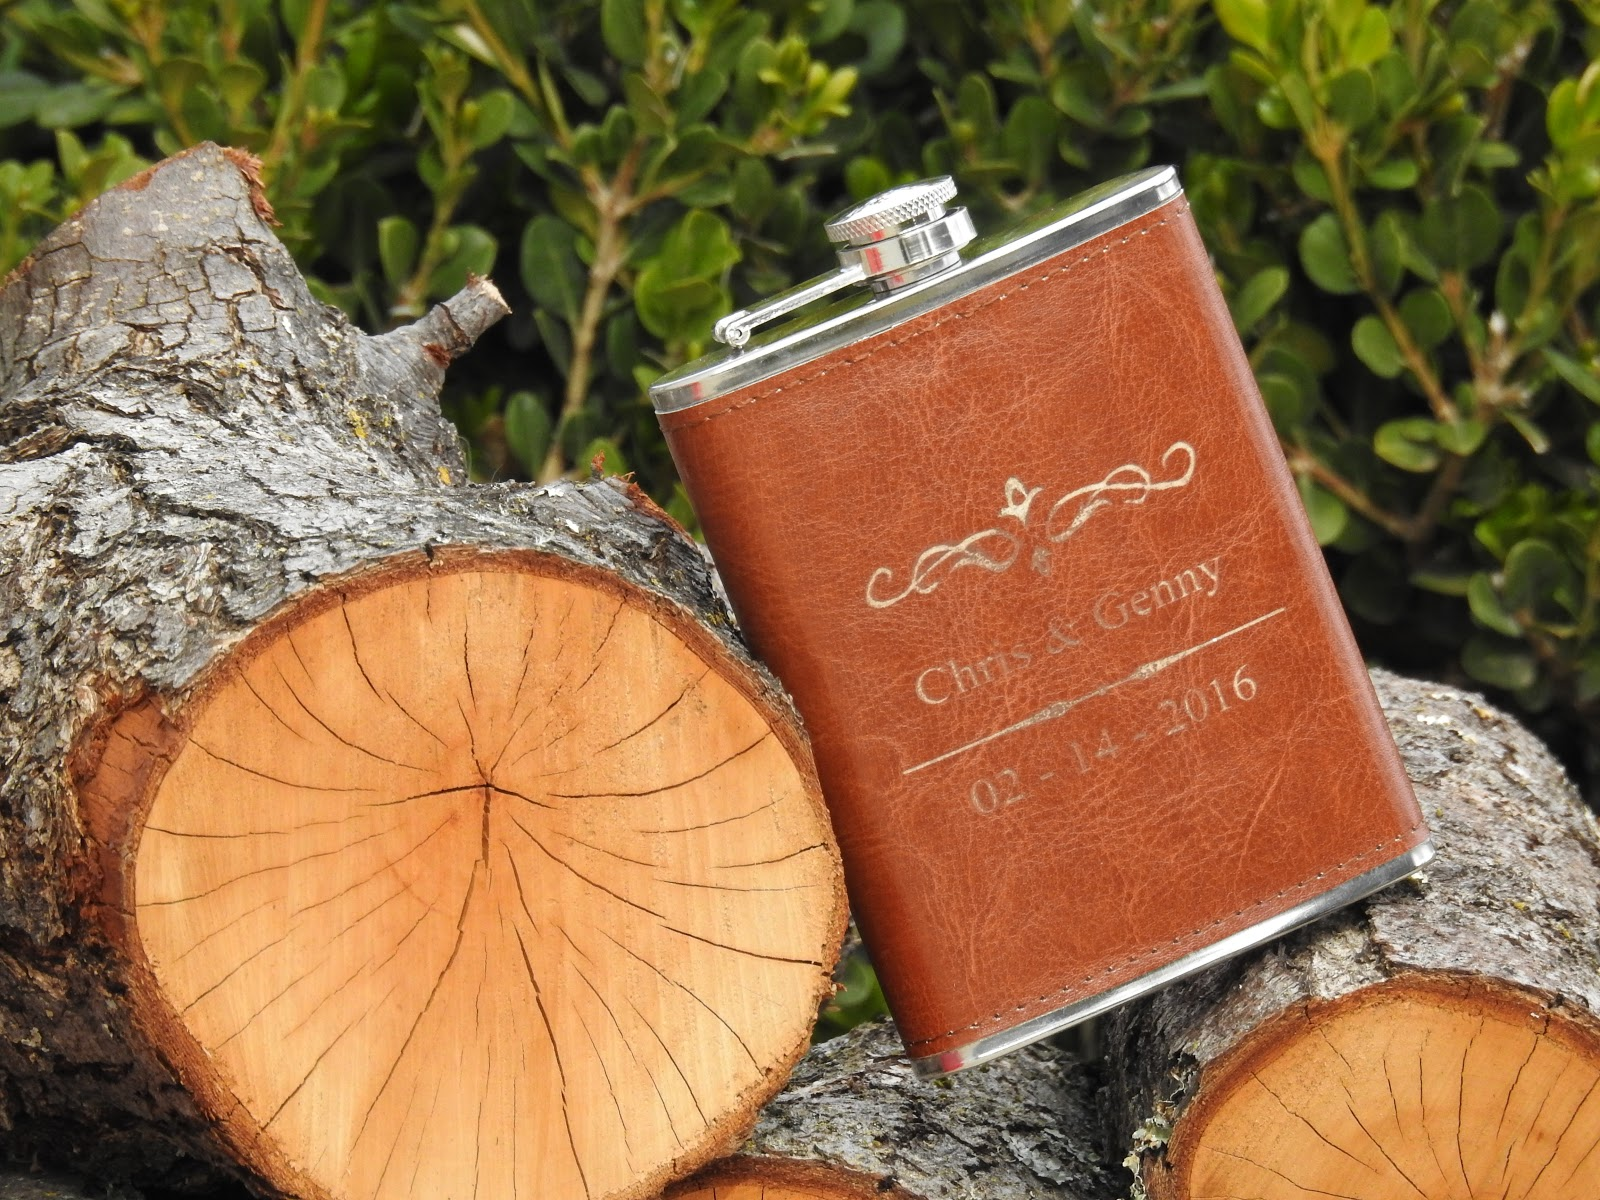 Personalized Gifts, the red flask